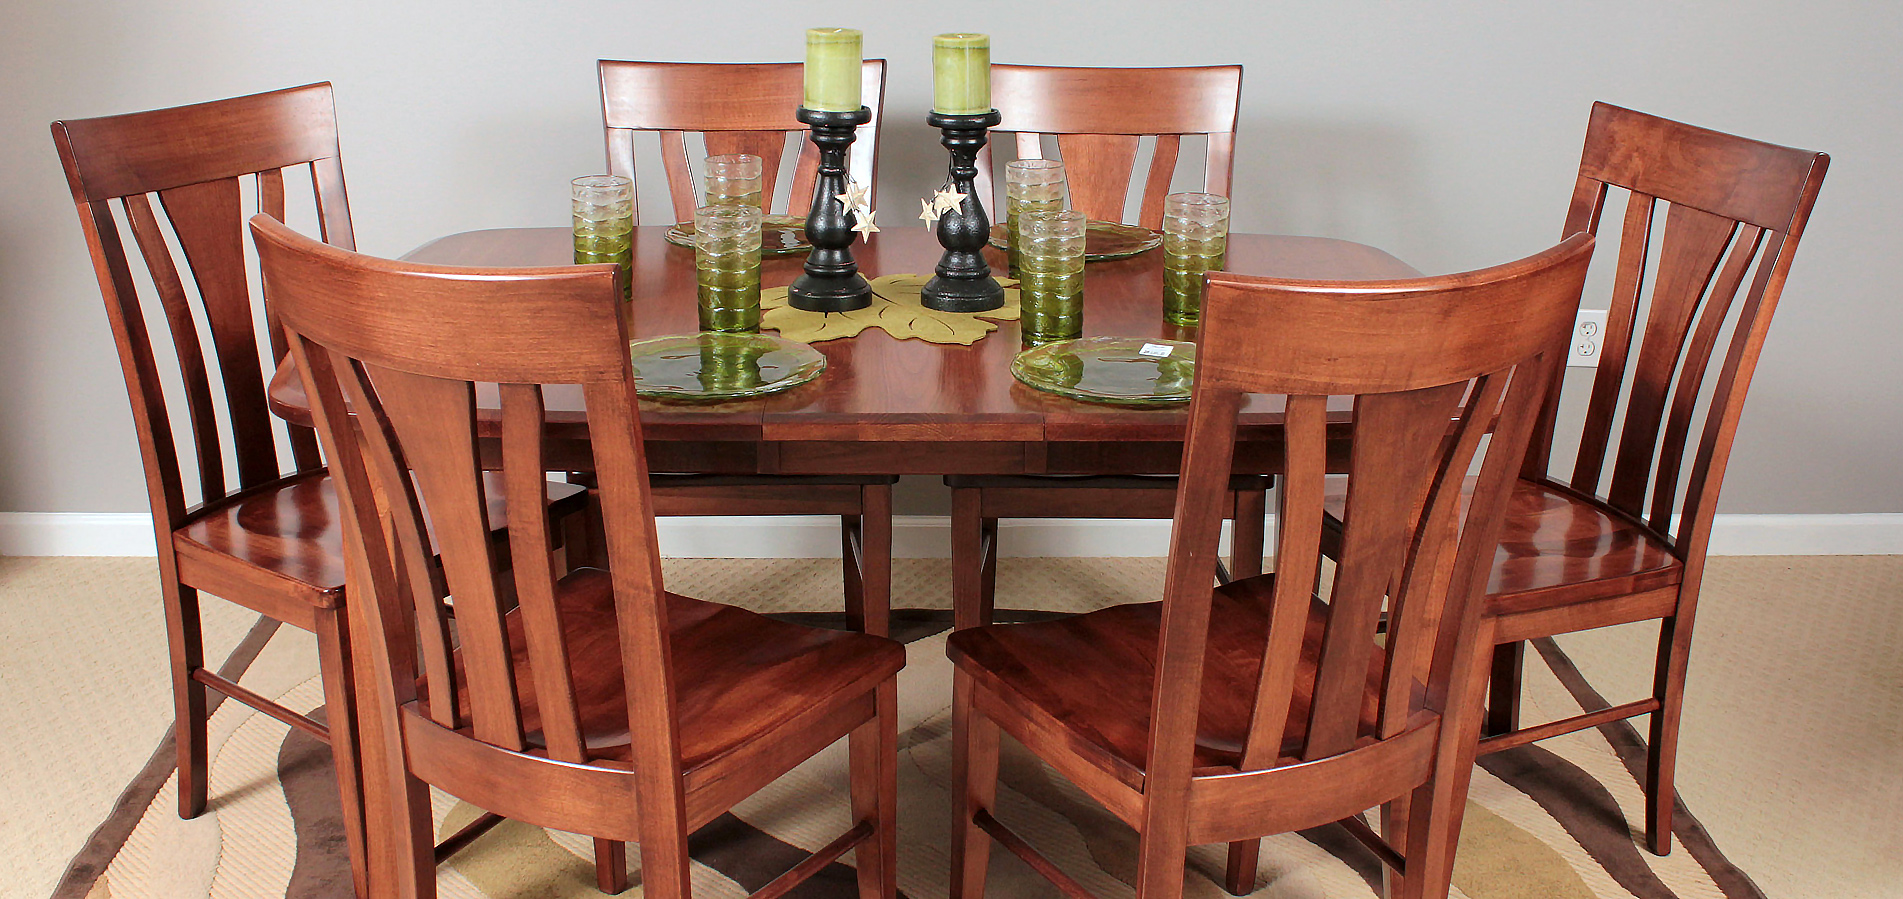 metro-dining-collection-with-splay-leg-table-1903-x-899jpg.jpg